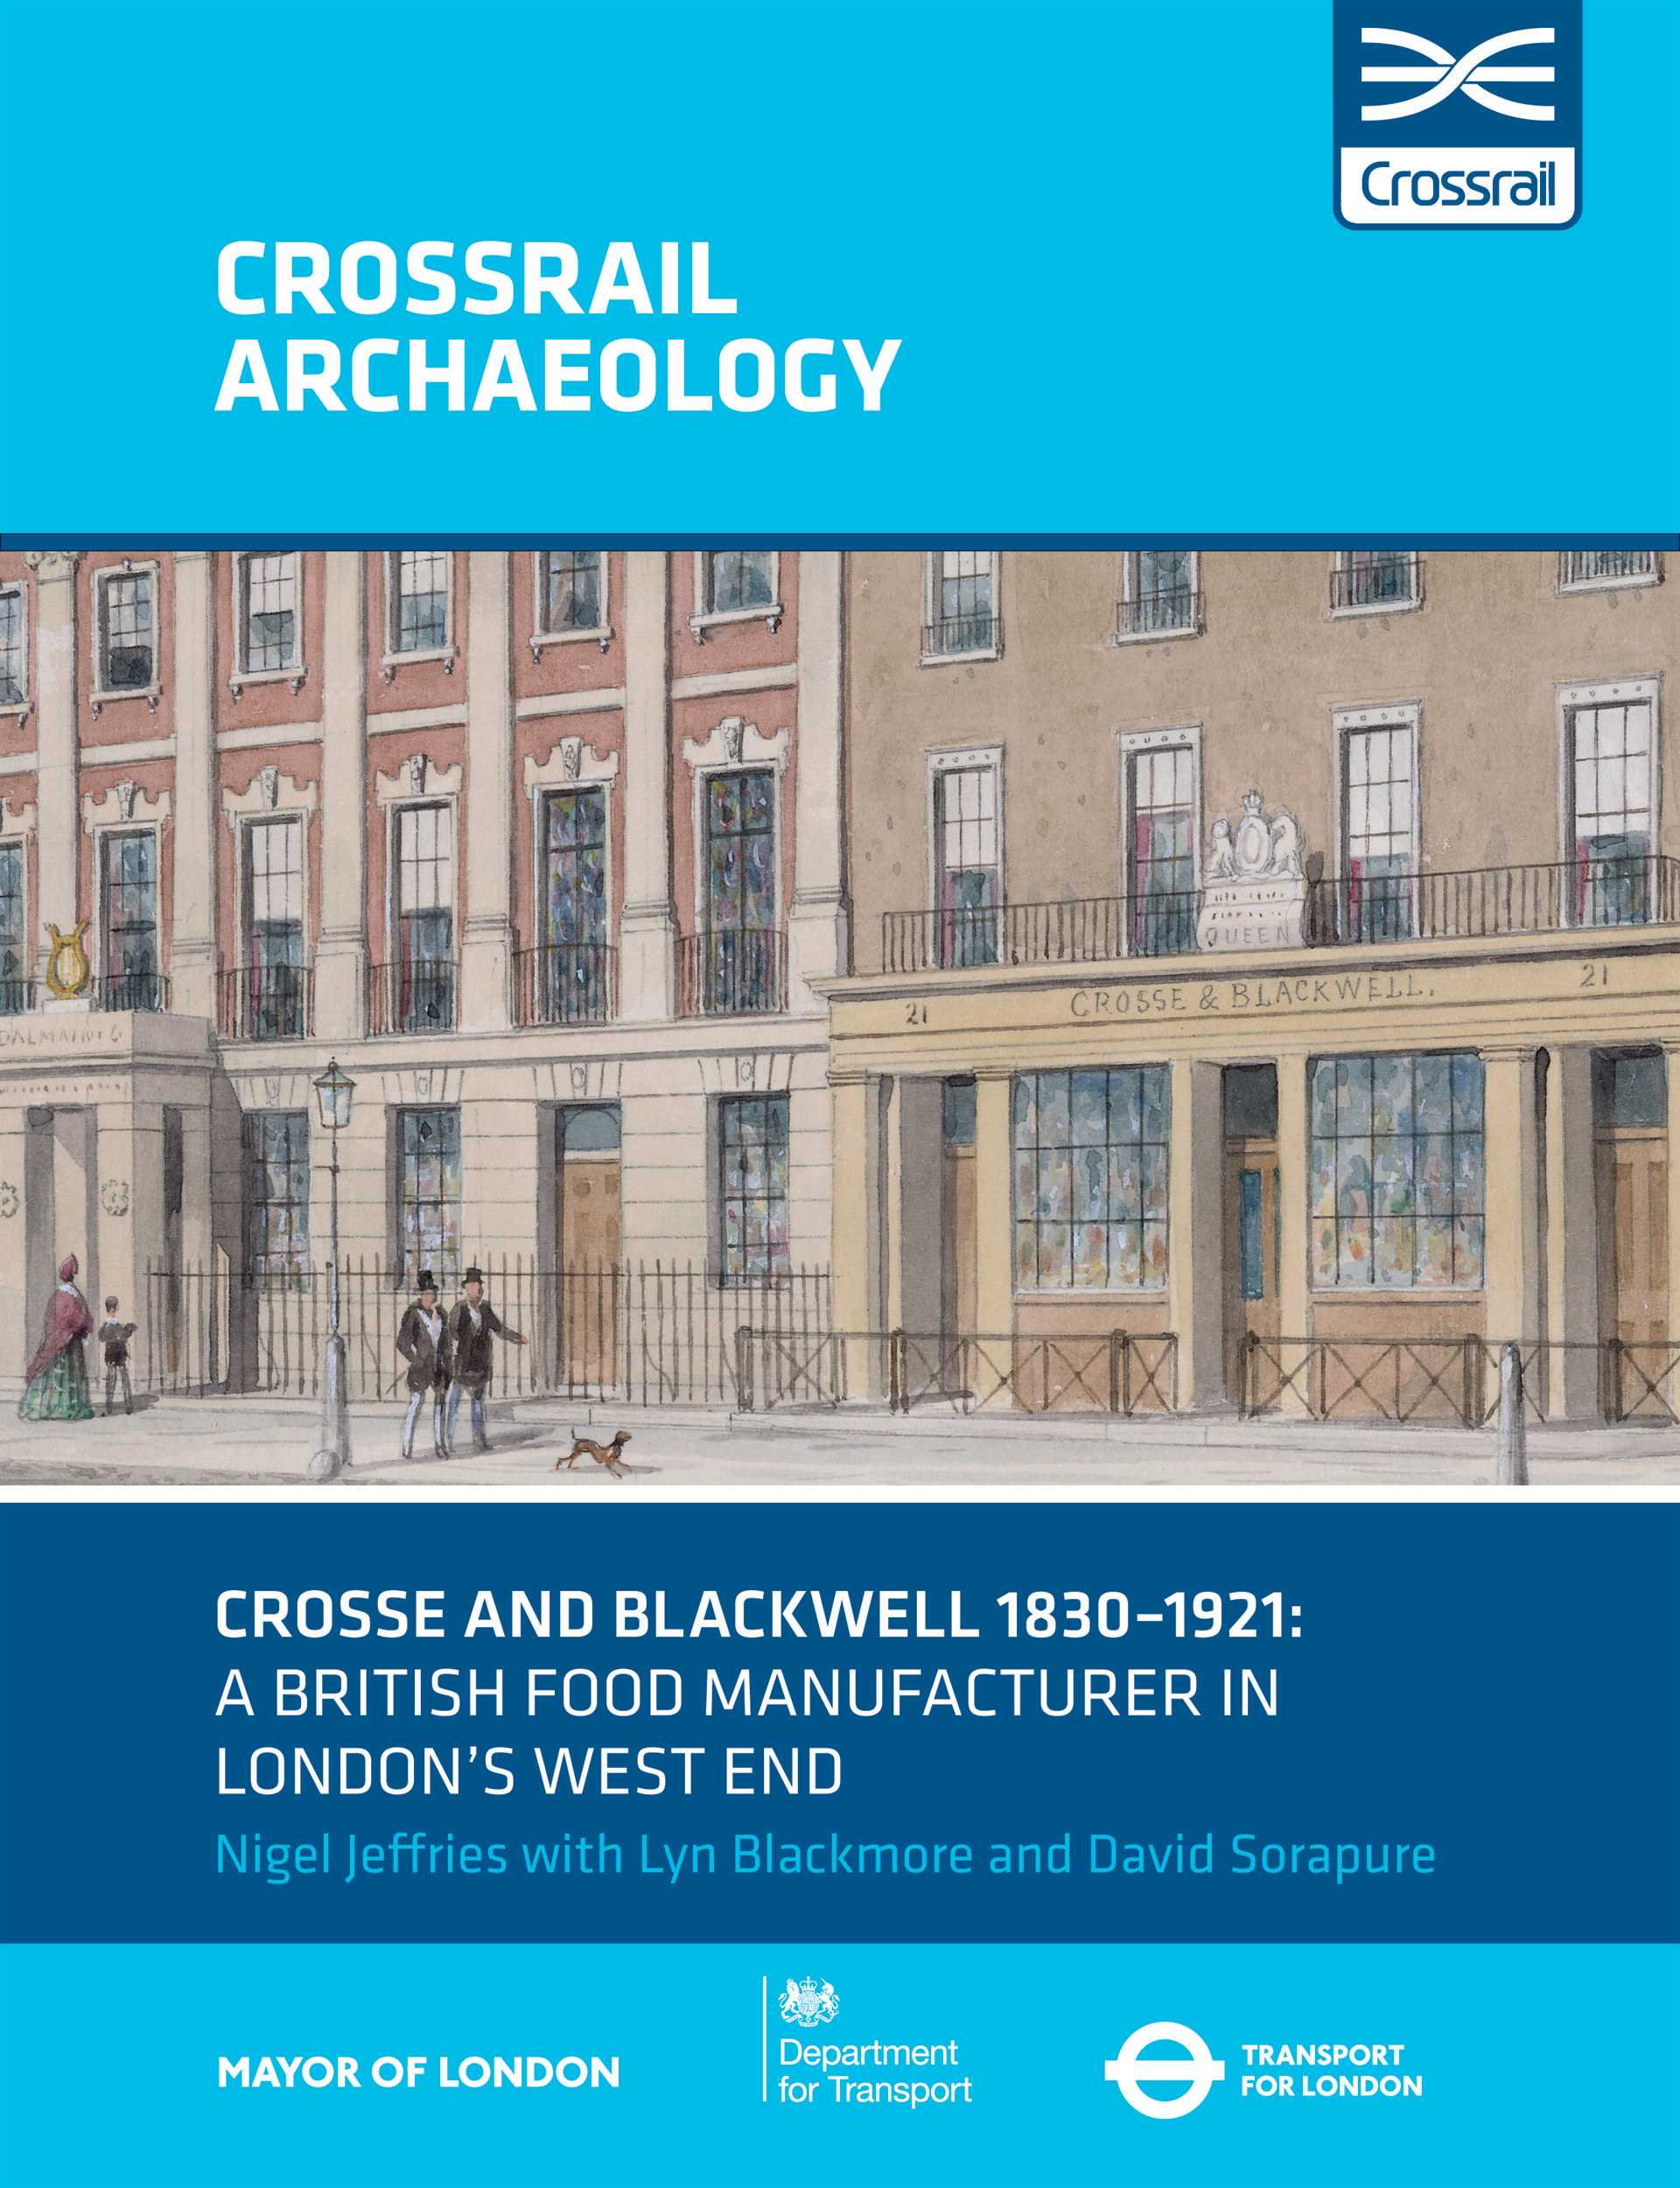 Crosse & Blackwell 1830-1921: A British food manufacturer in London's West End_257619